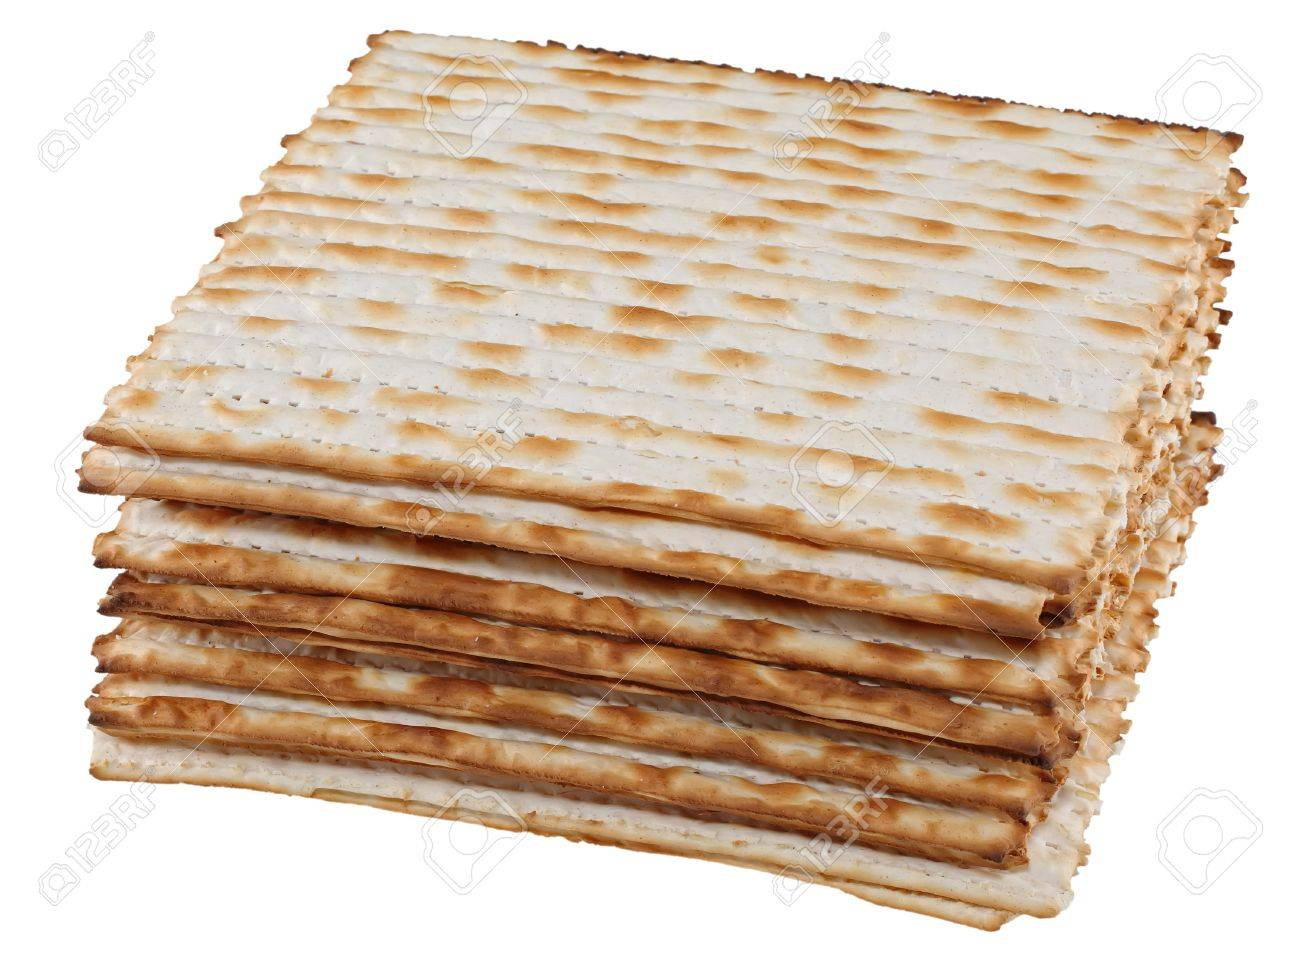 Matzo (or matzah) is bread traditionally eaten by Jews during the week-long Passover holiday Stock Photo - 17936467